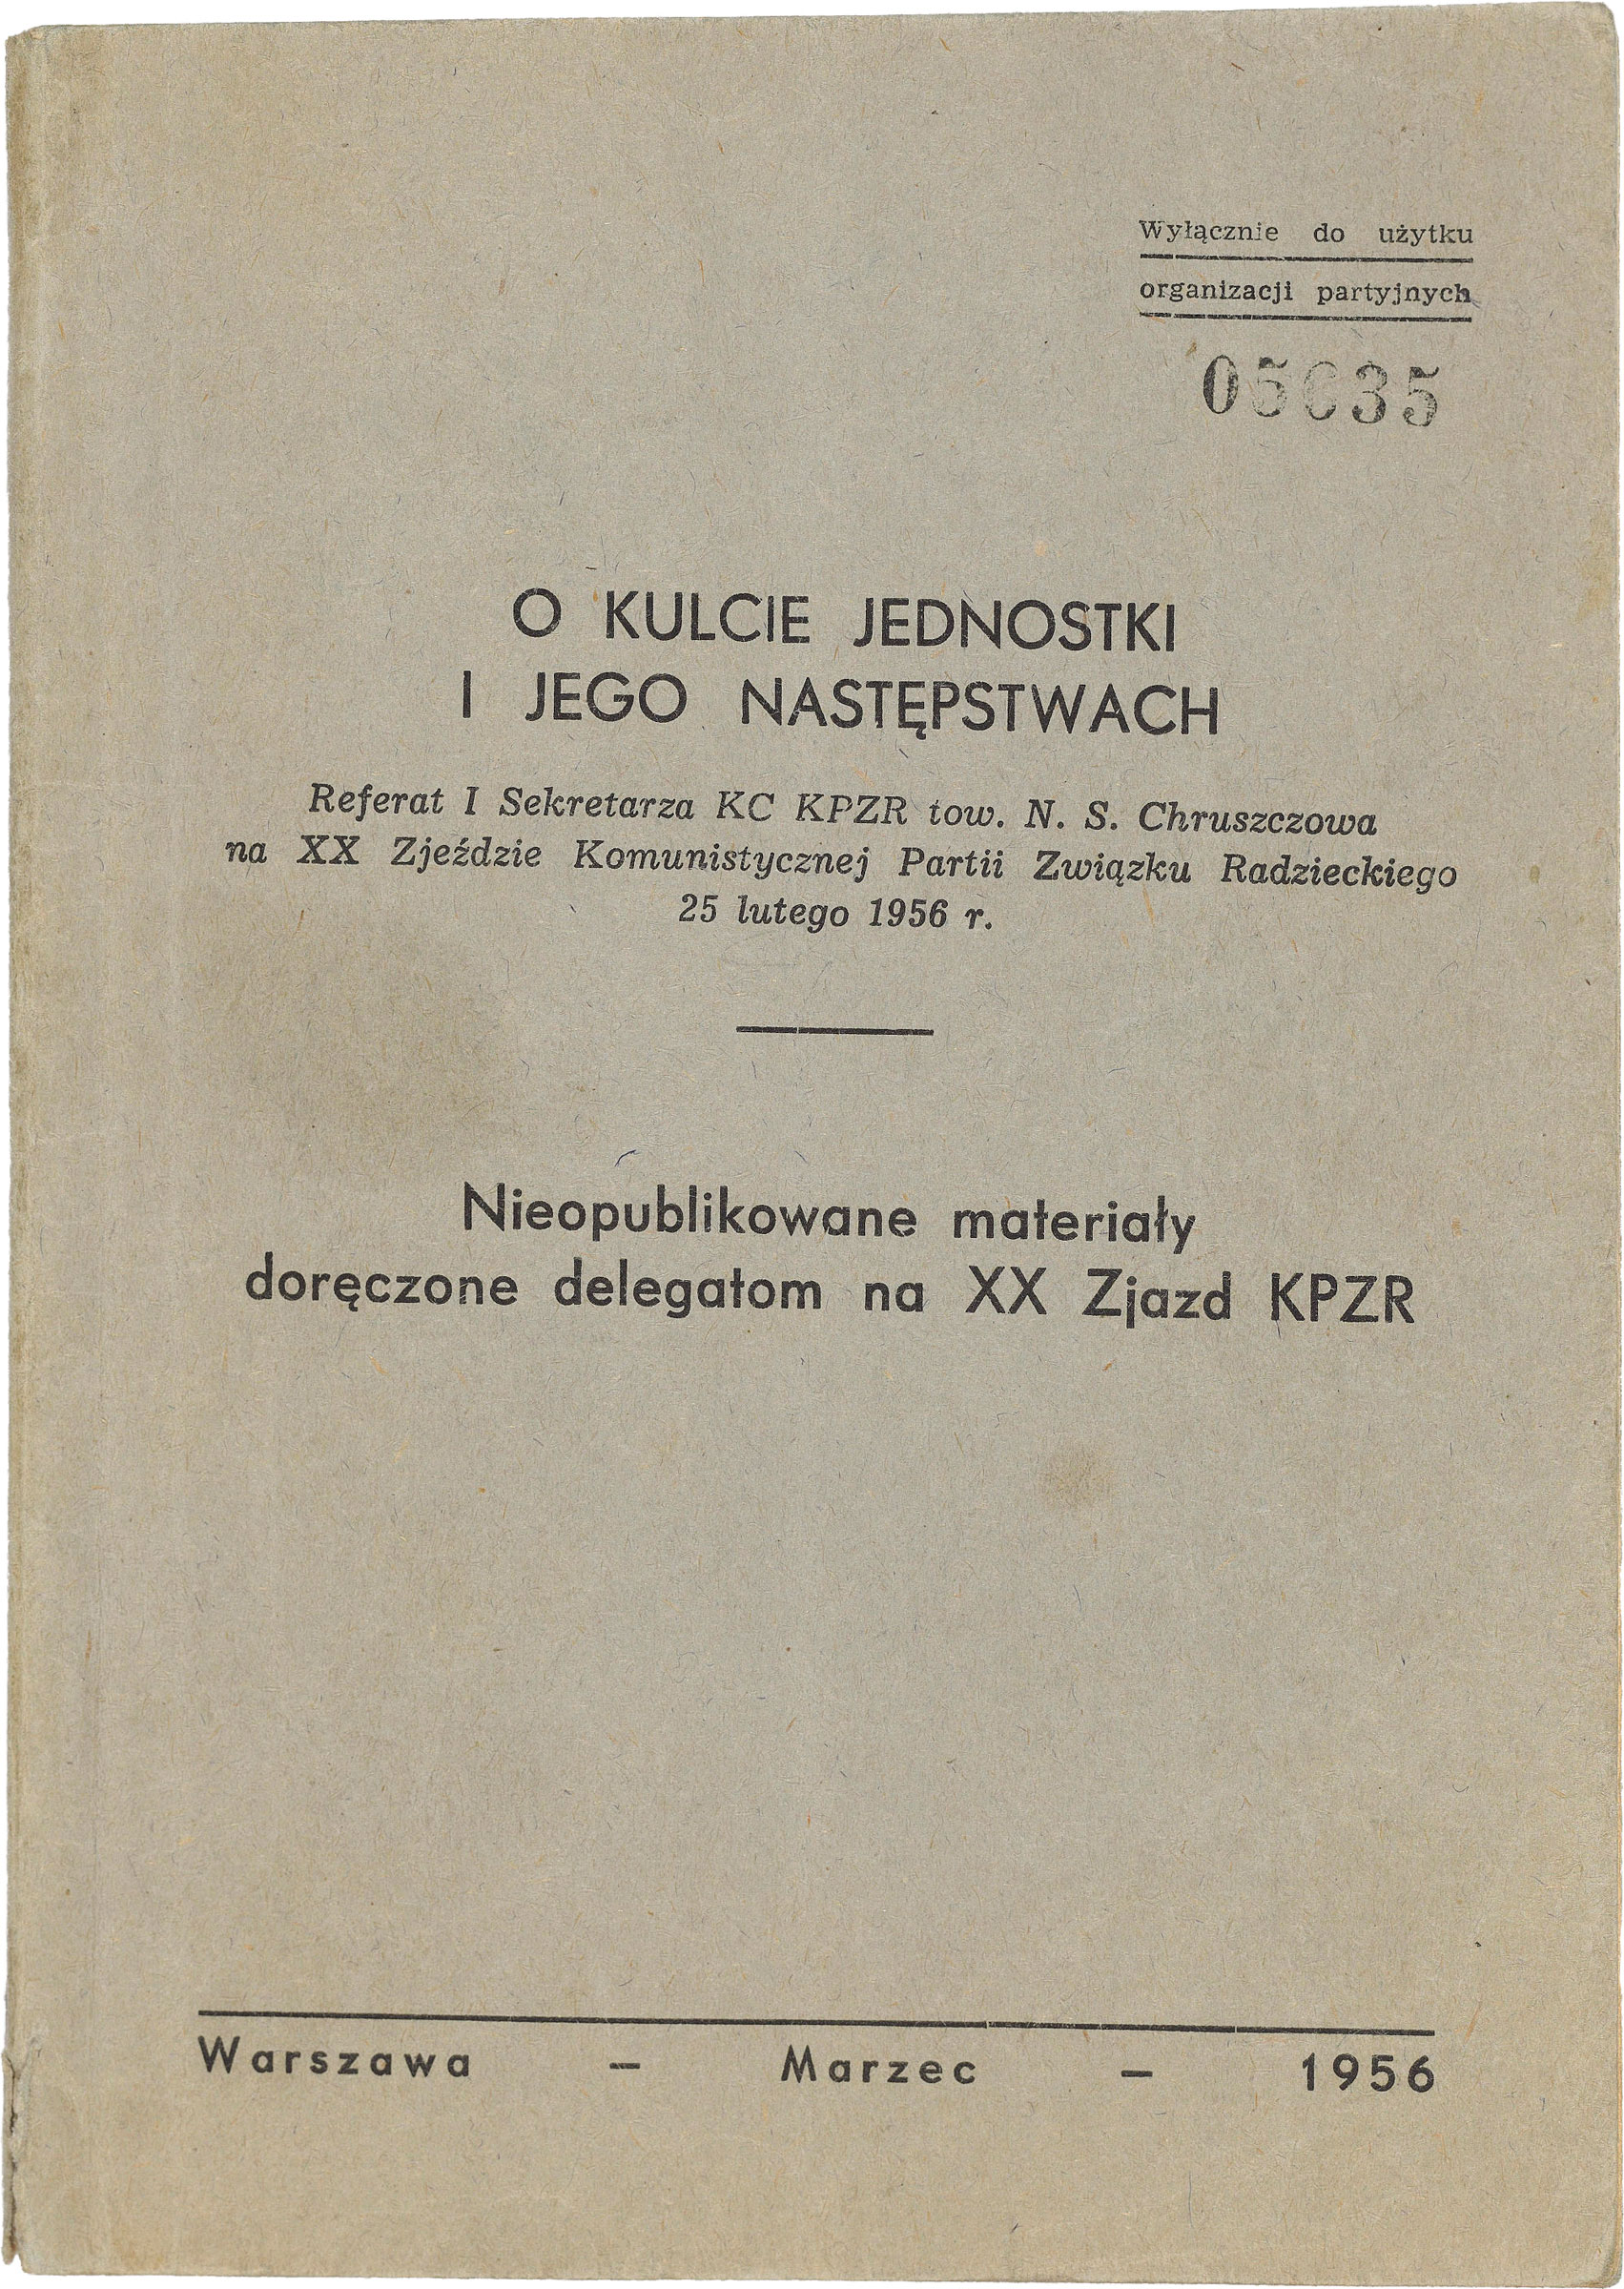 Suppression of the rebellion in 1956 (photos and documents)